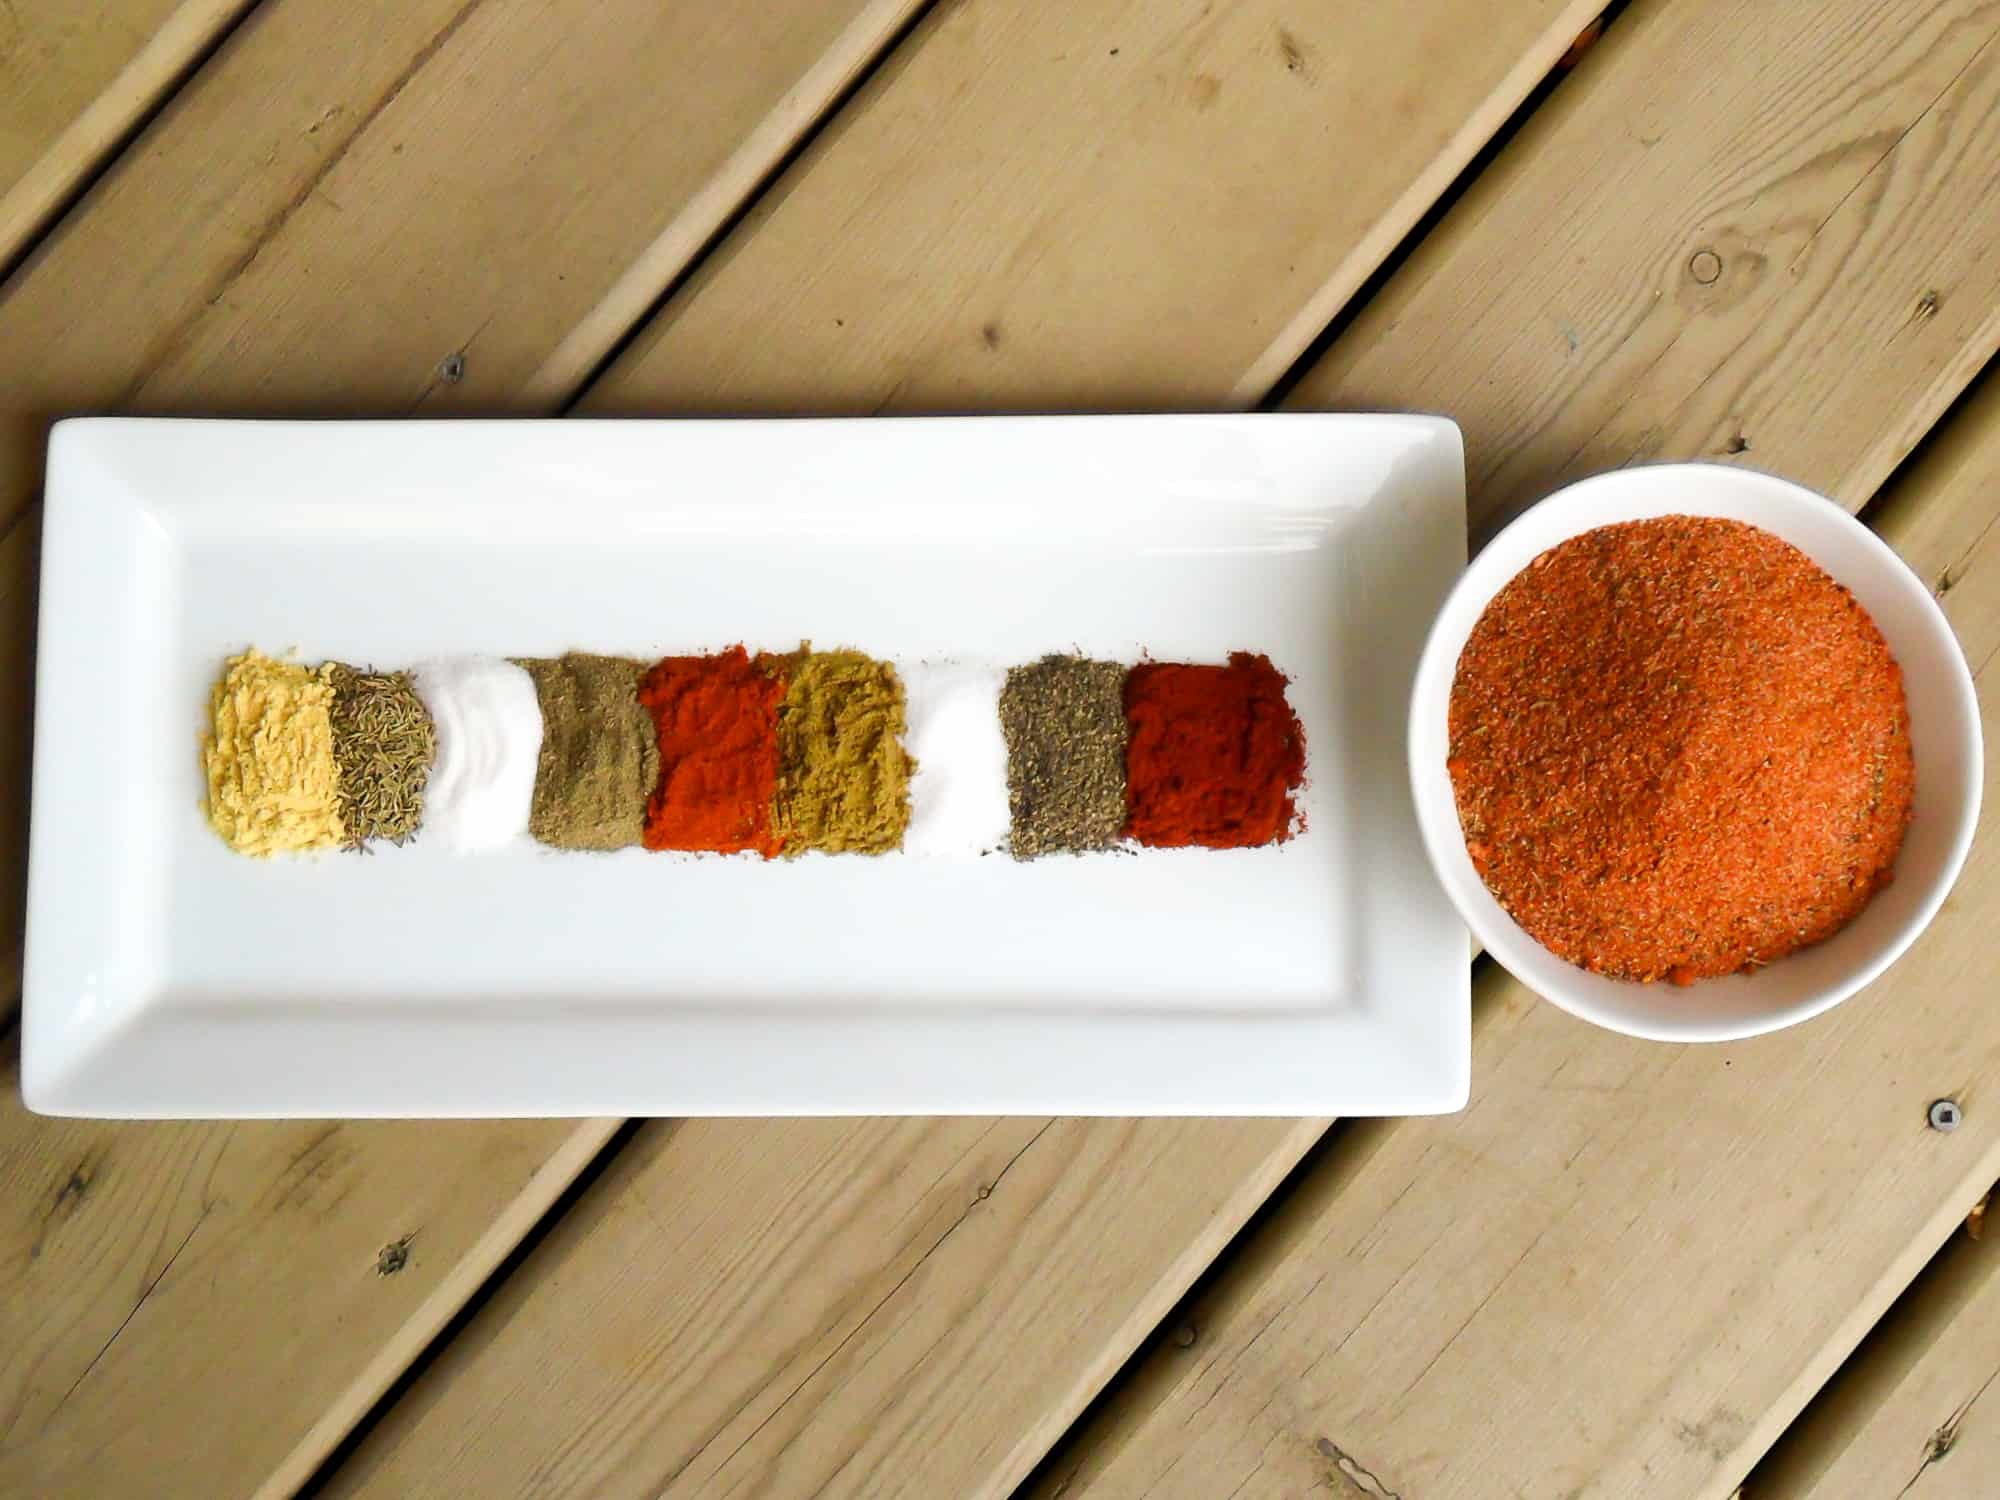 A classic rub that is great for grilled and smoked meat. Perfect rub recipe for smoking or grilling and great on pork, chicken and seafood.